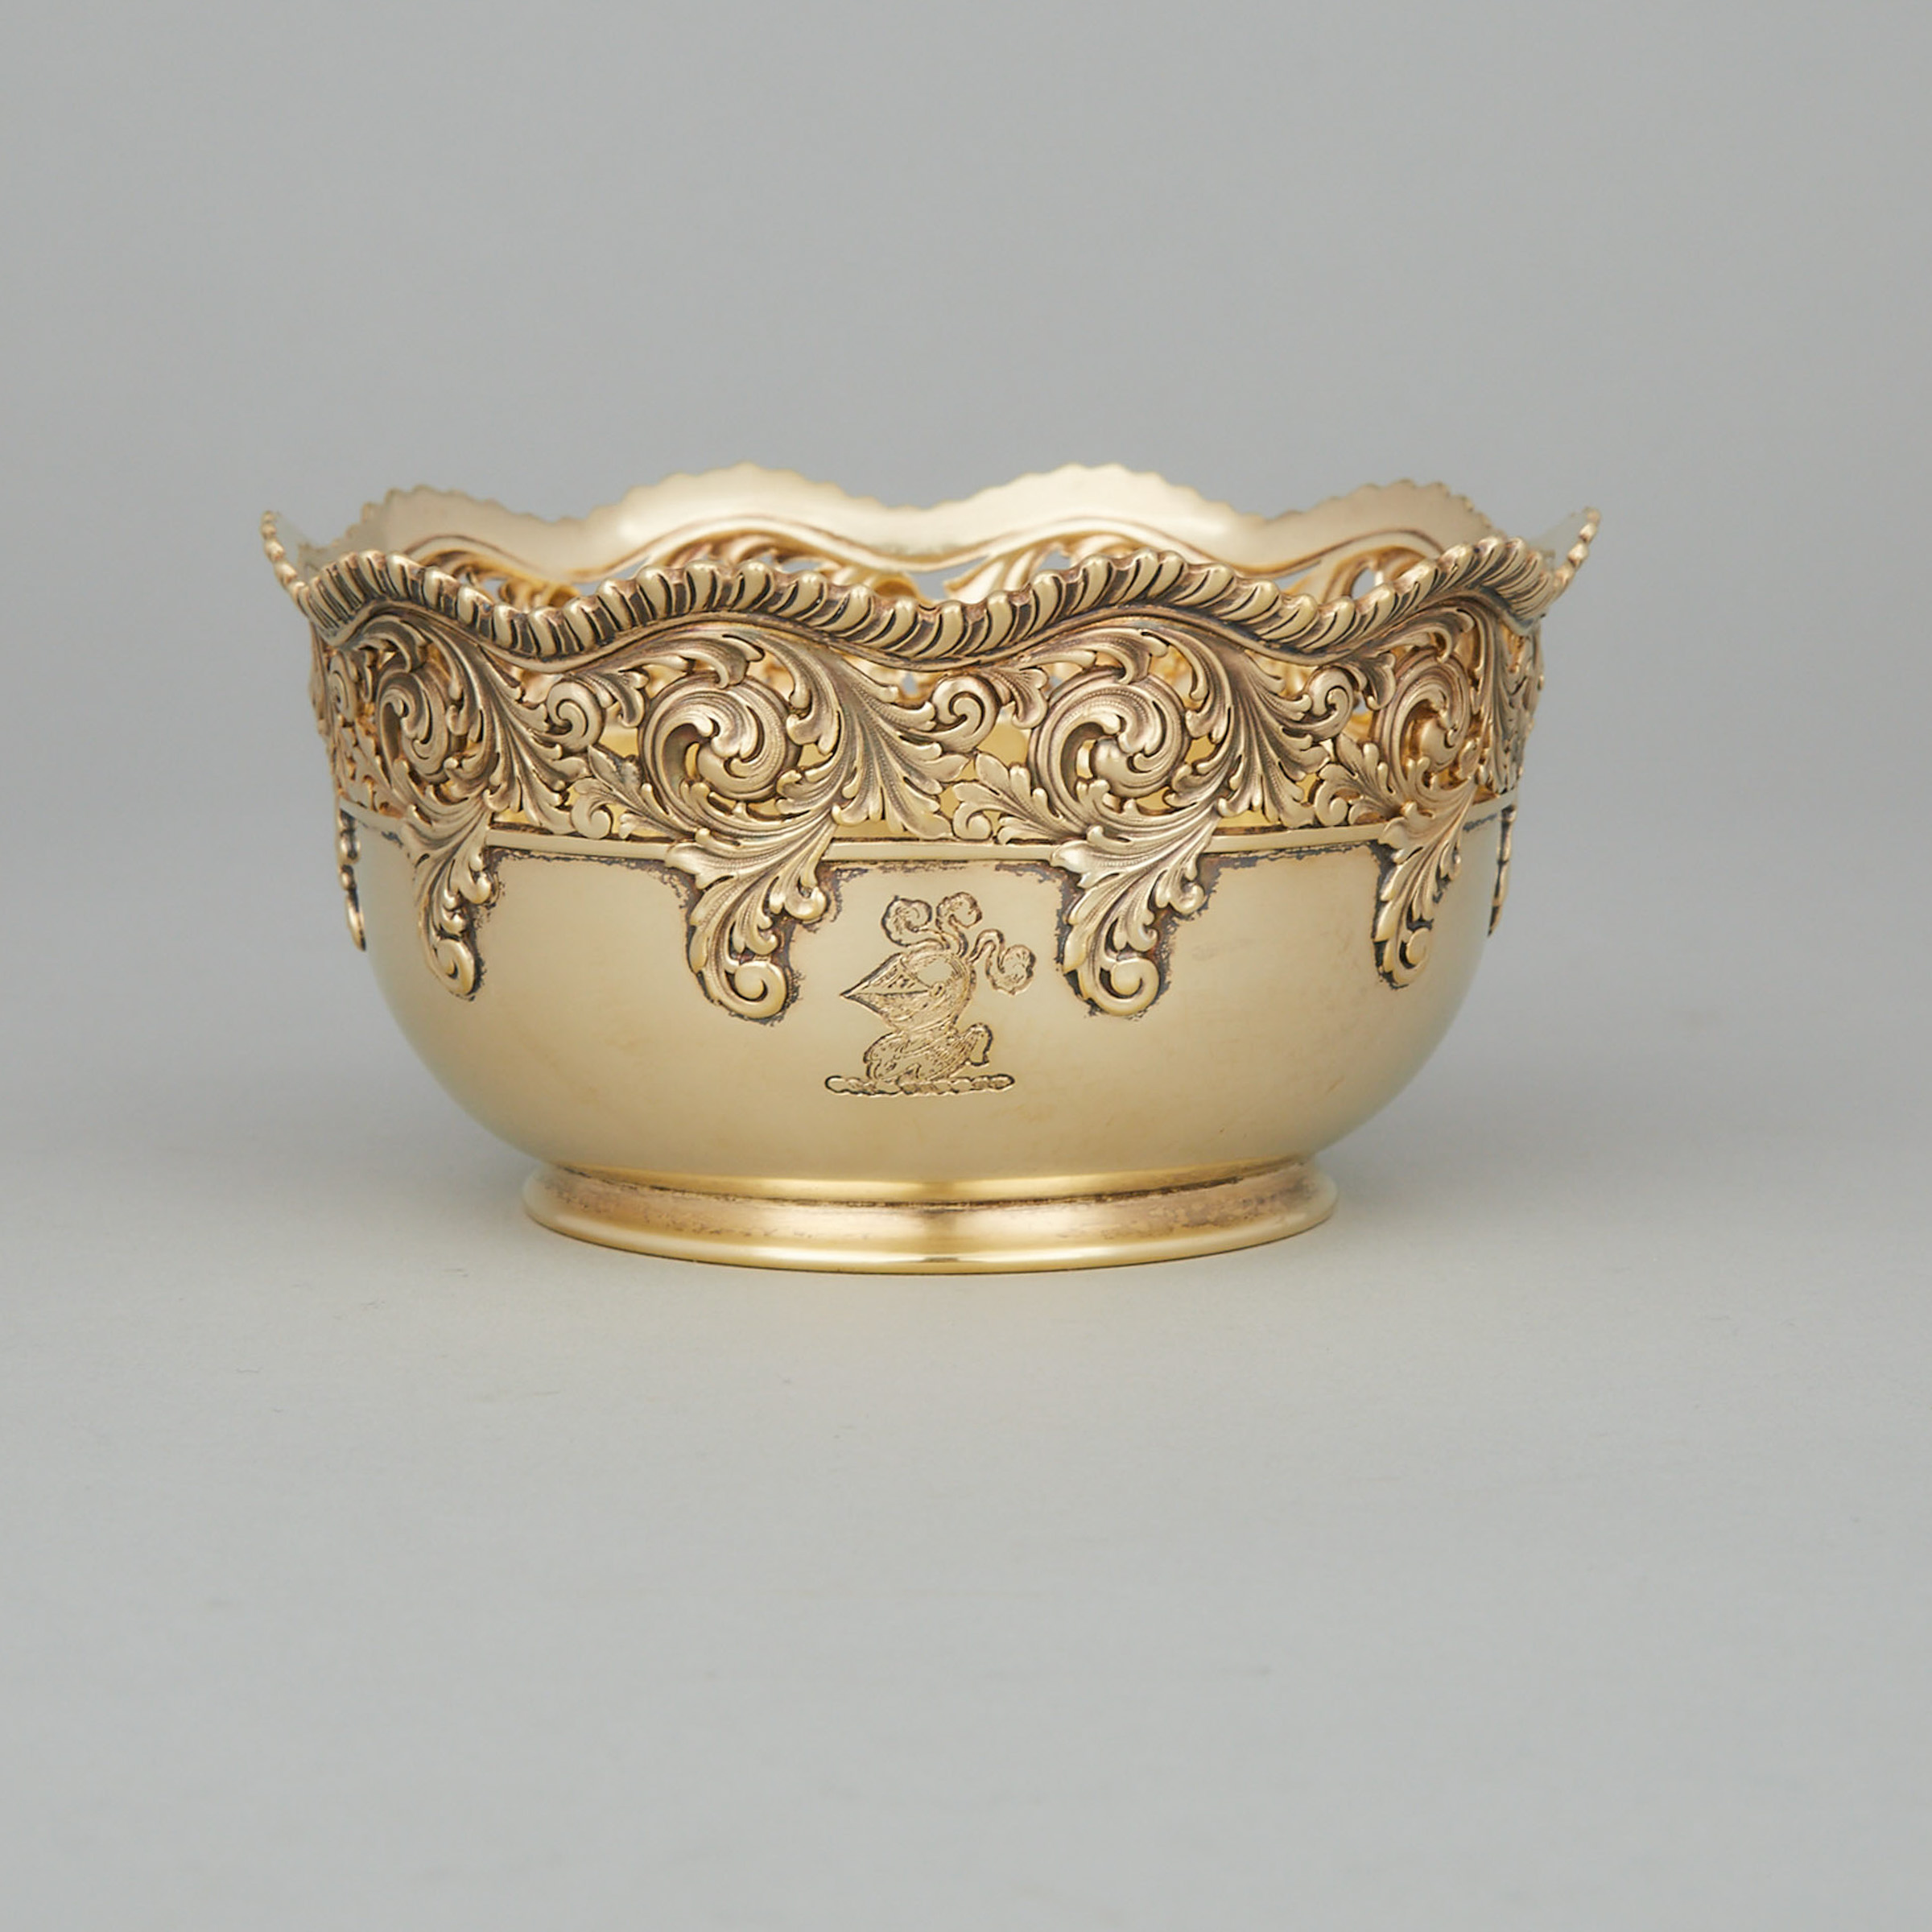 American Silver-Gilt Pierced Bowl, Tiffany & Co., New York, N.Y., late 19th century